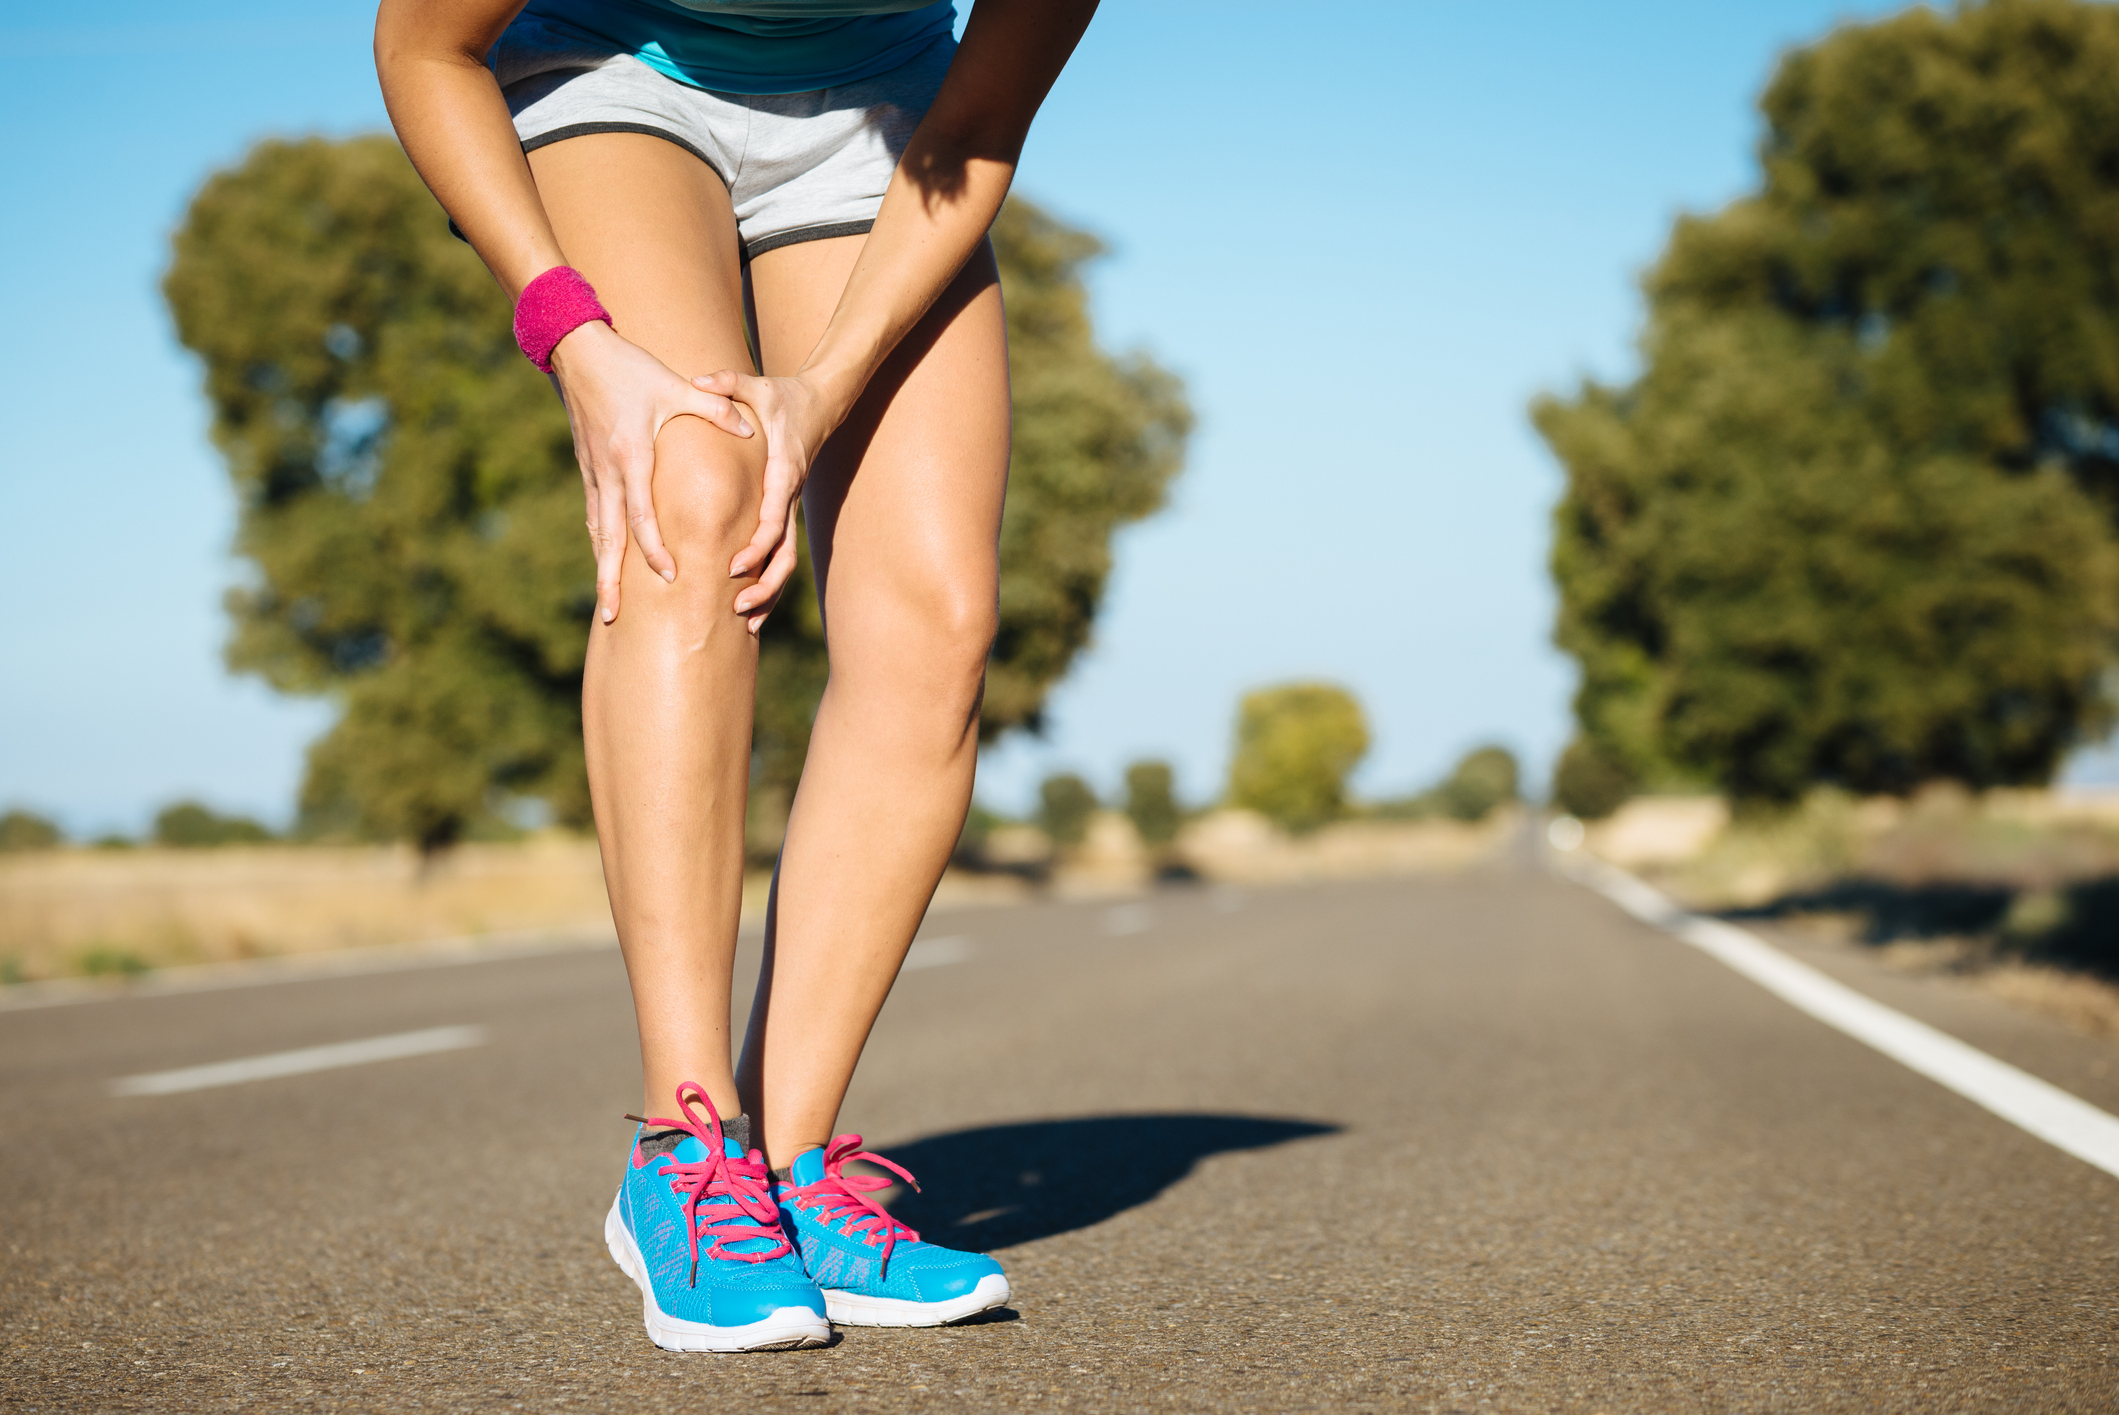 iStock-knee pain in runner.jpg